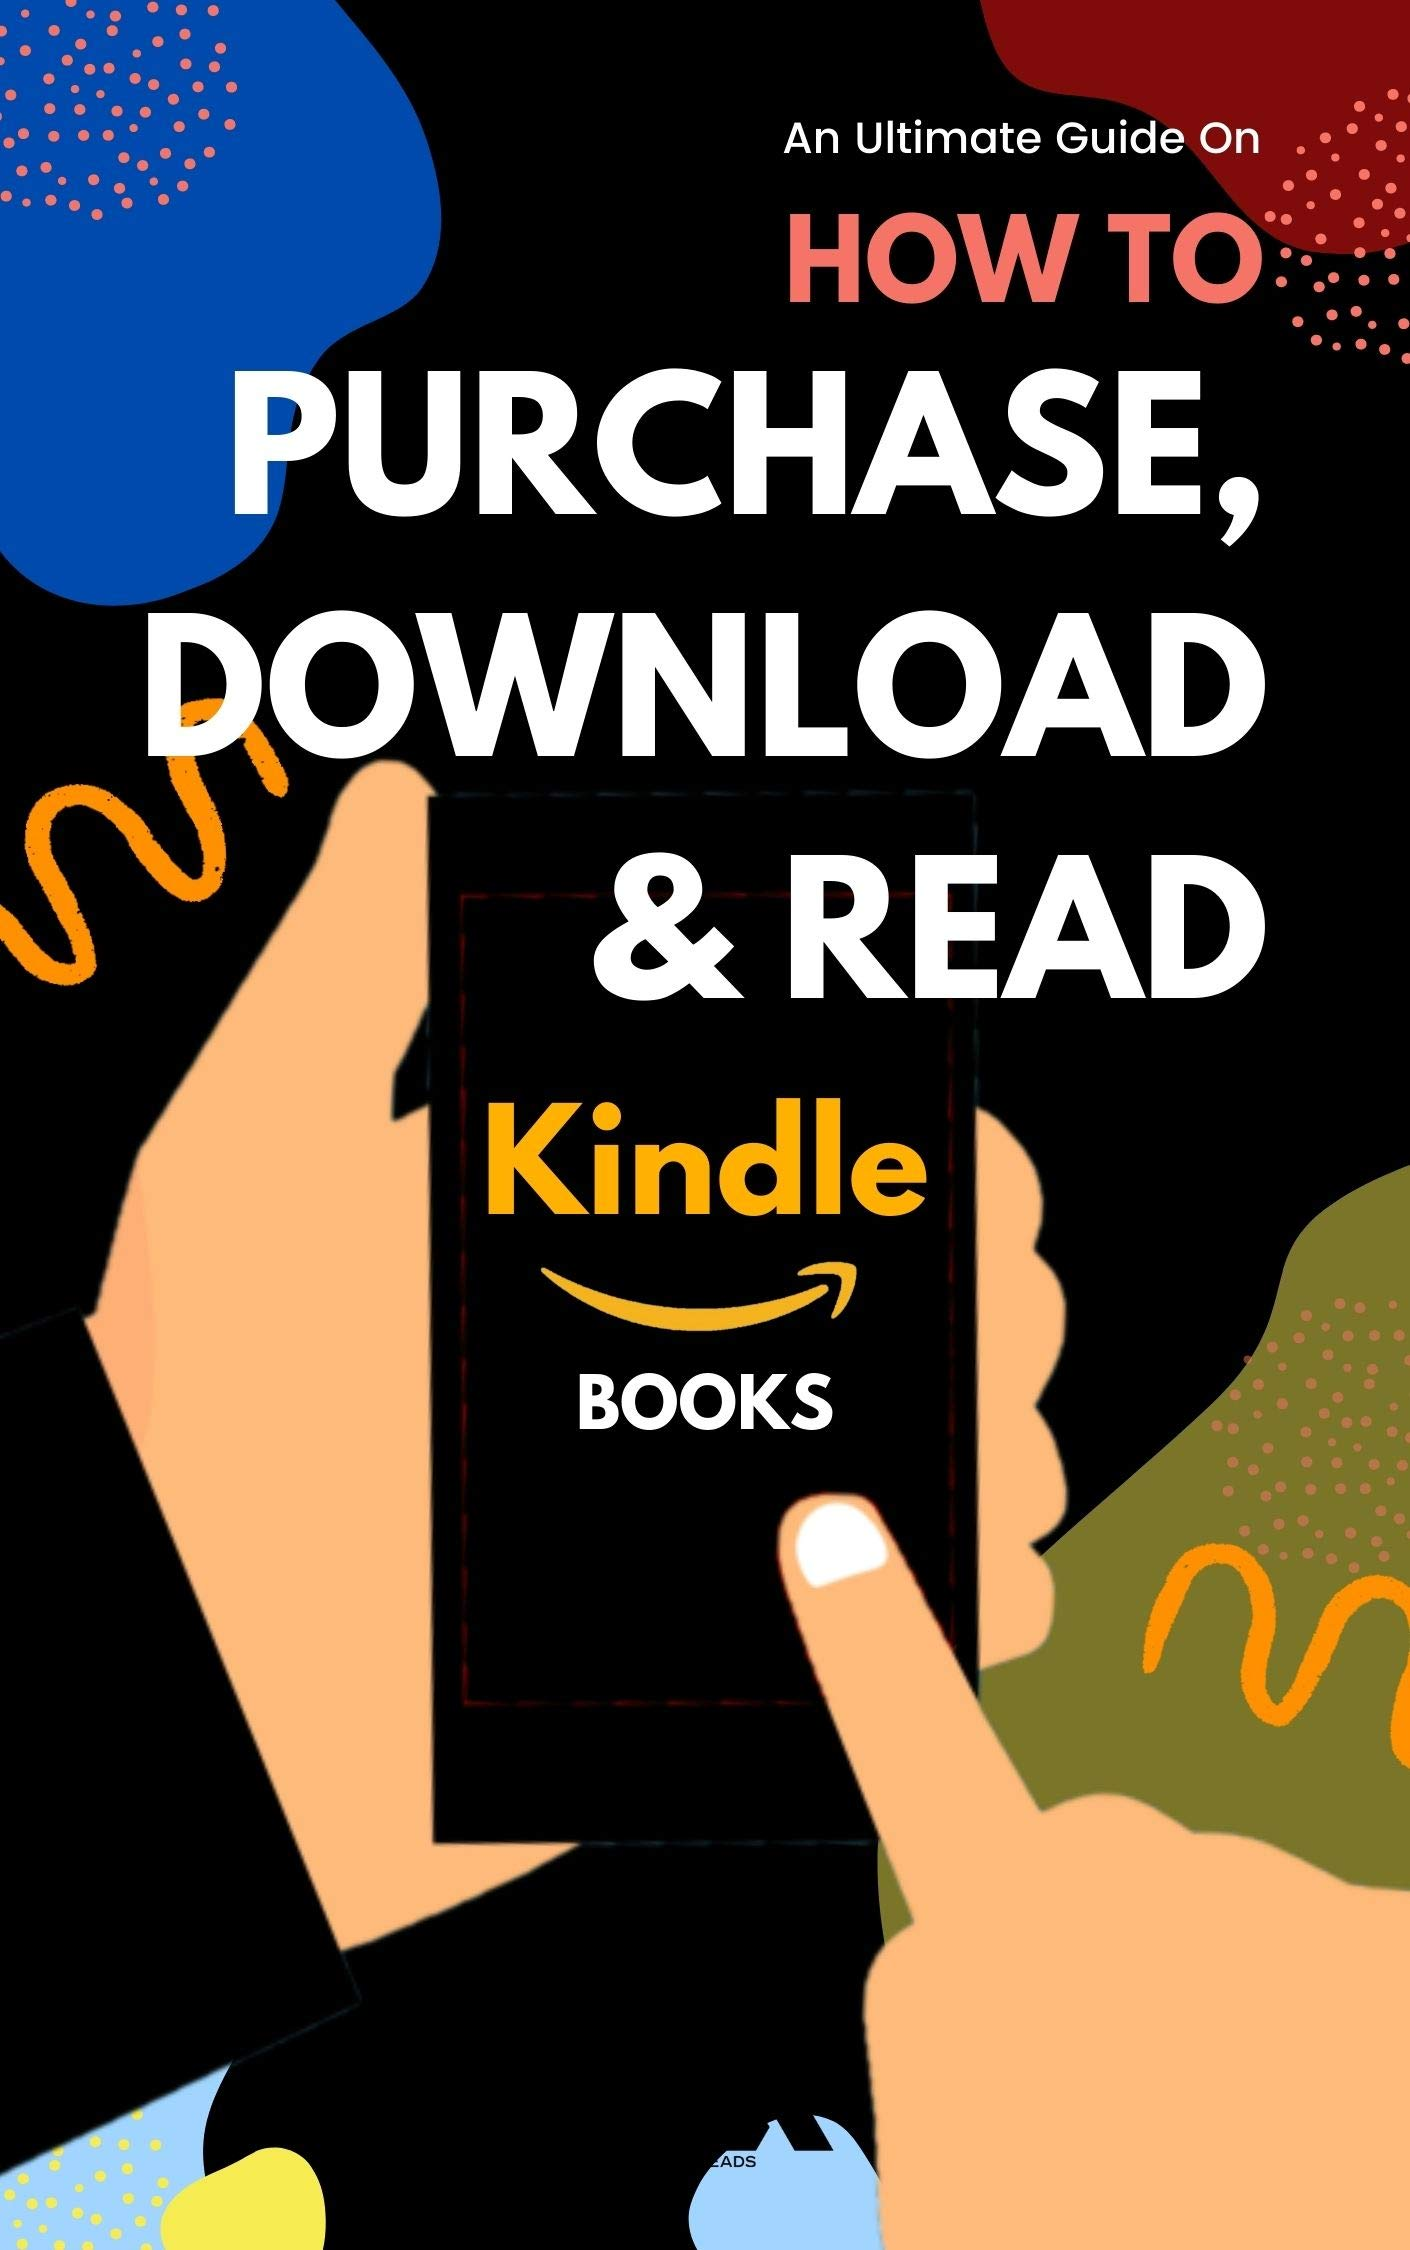 Purchase, Download & Read Kindle Books: Easy Step-by-Step Guide on How to Buy Download and Read Books on Kindle App, iPhone, iPad, Fire Tablet or eReader